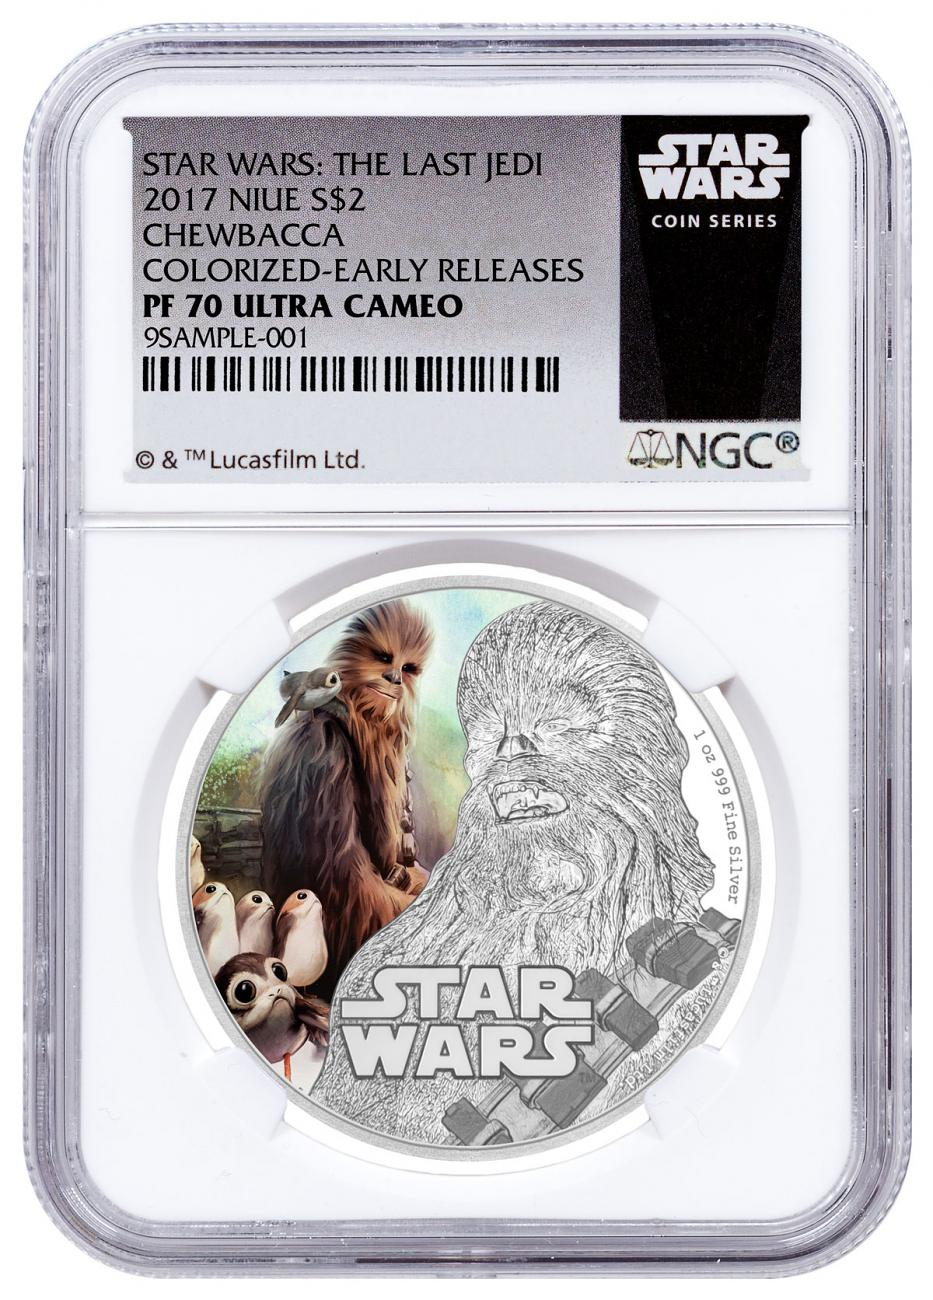 2017 Niue Star Wars: The Last Jedi - Chewbacca 1 oz Silver Colorized Proof $2 Coin NGC PF70 UC ER Star Wars Label